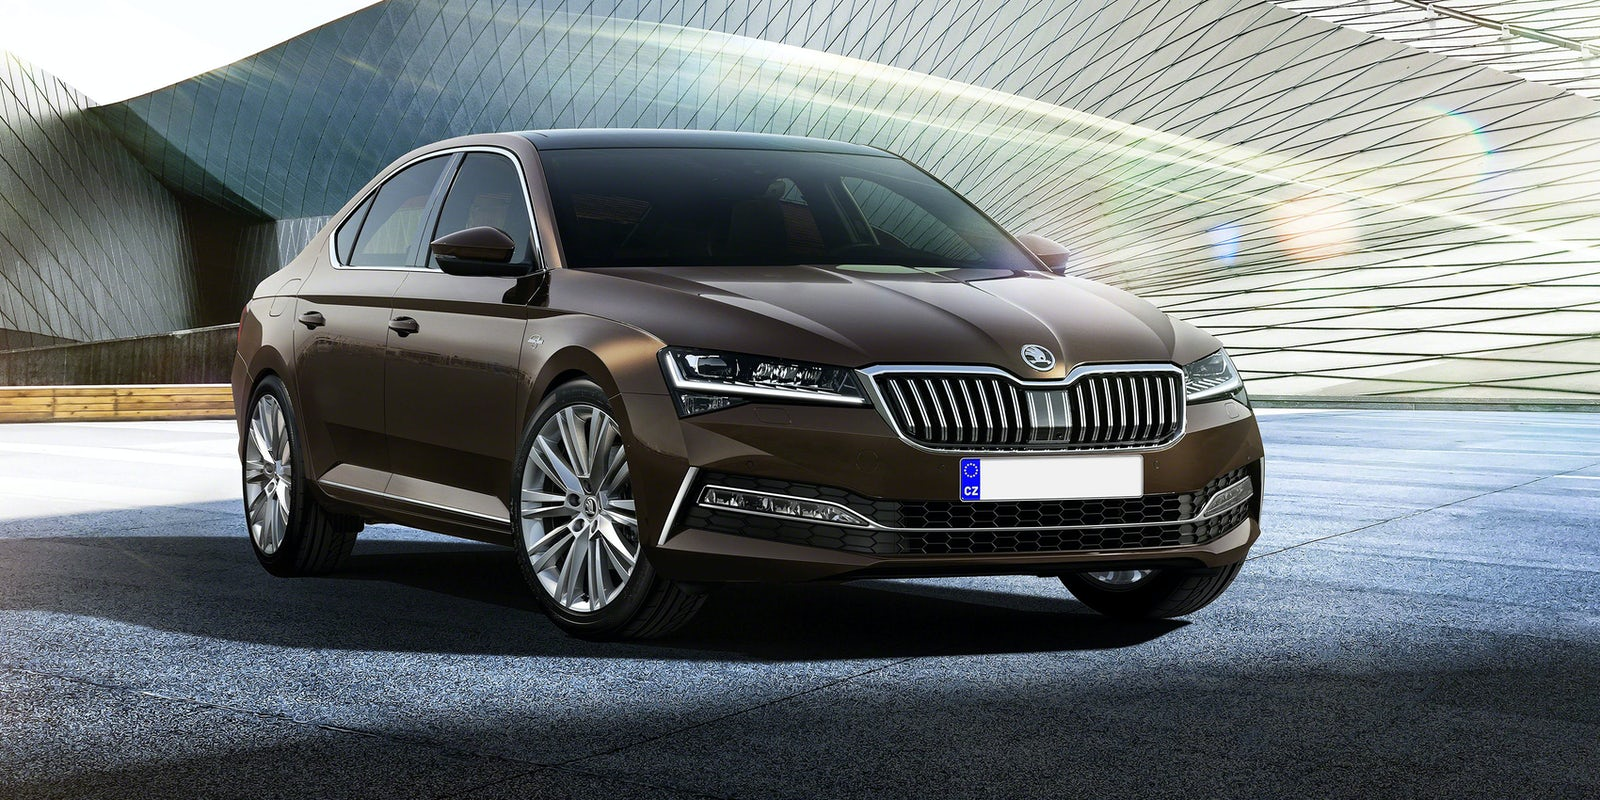 2019 Skoda Superb Price Specs And Release Date Carwow